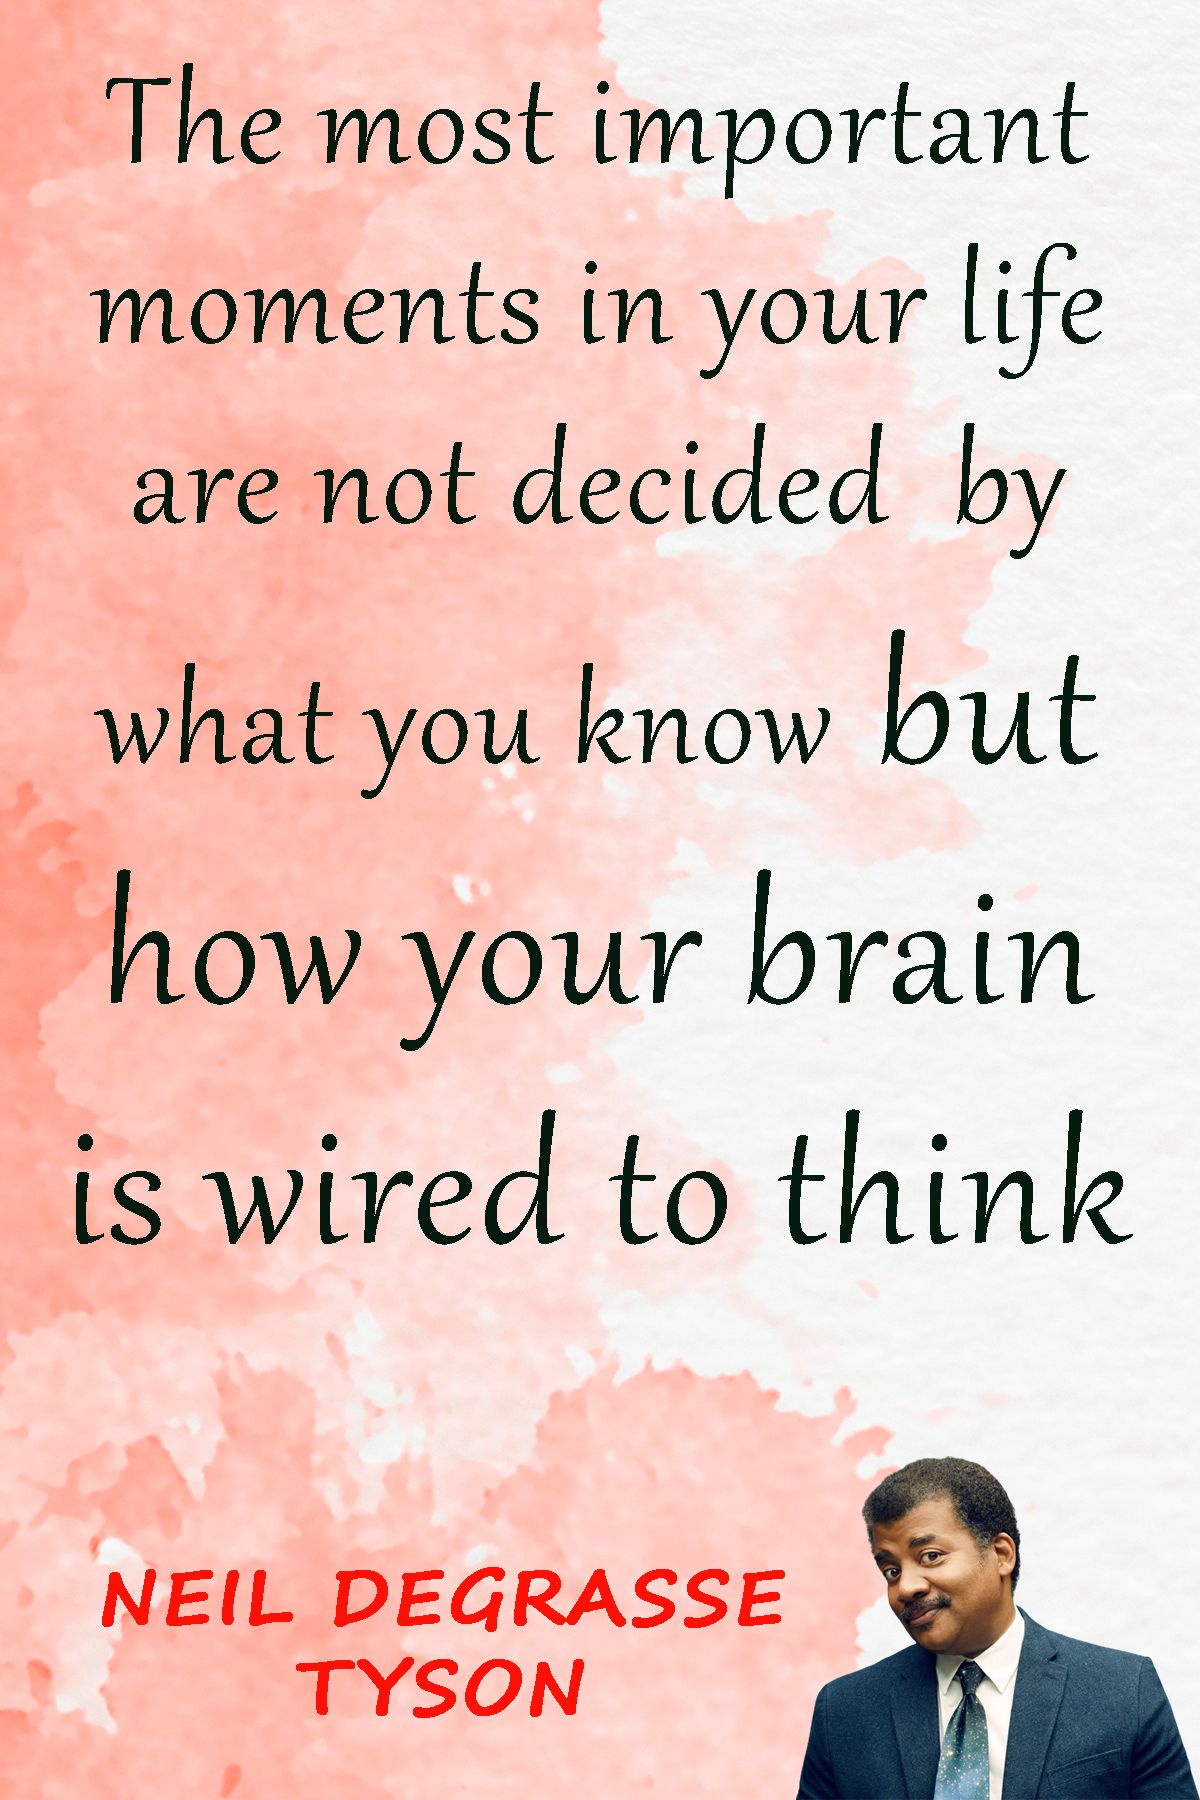 The most important moments in your life are not decided by what you know but how your brain is wired to think . – Neil deGrasse Tyson [1200 x 1650]